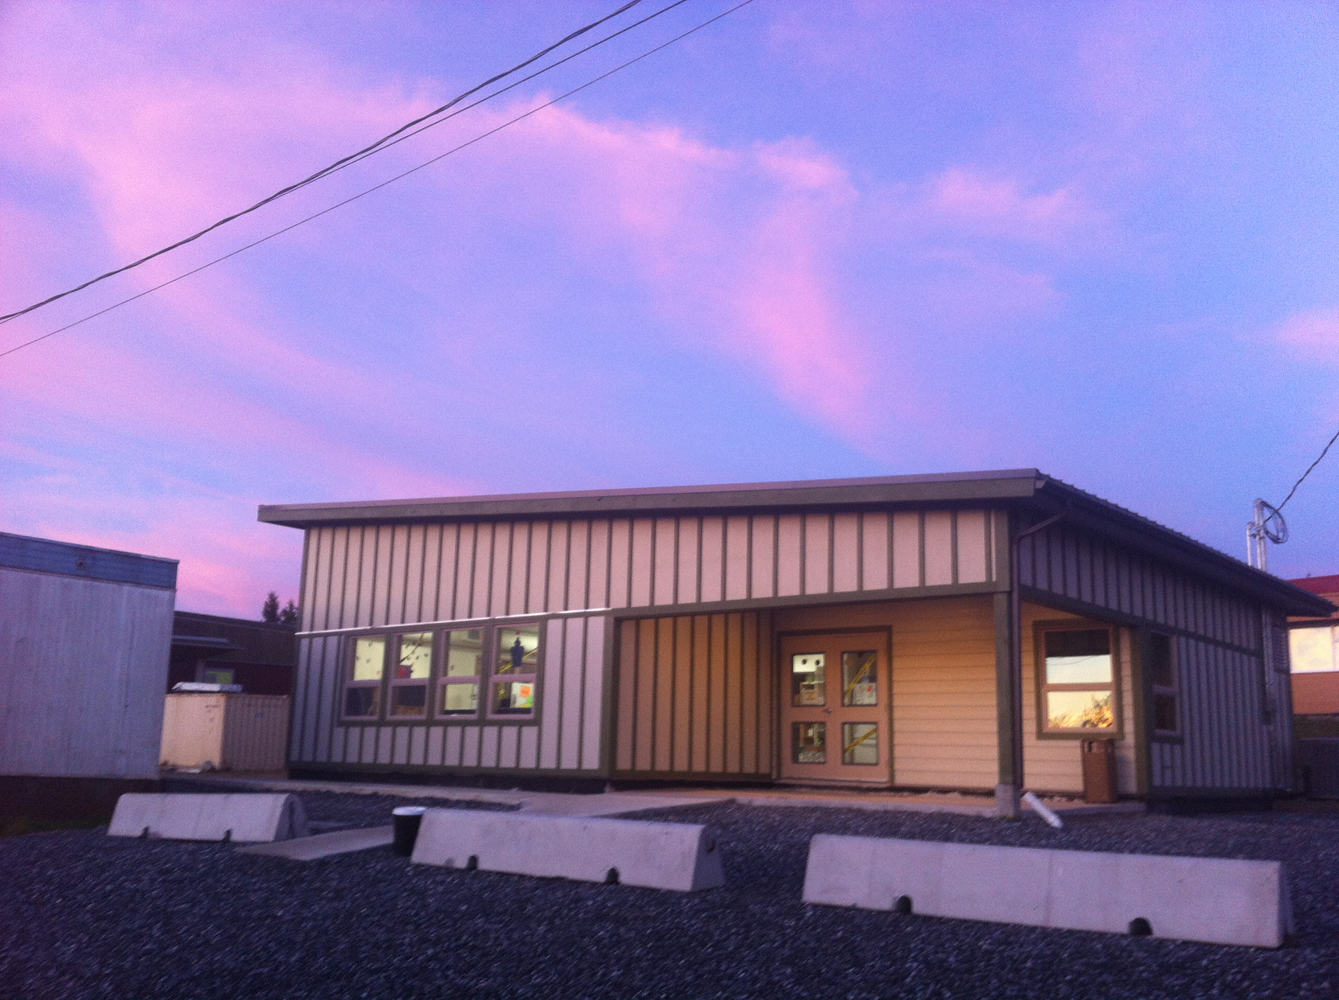 The brand new YOUTH CENTRE pretty in pink!